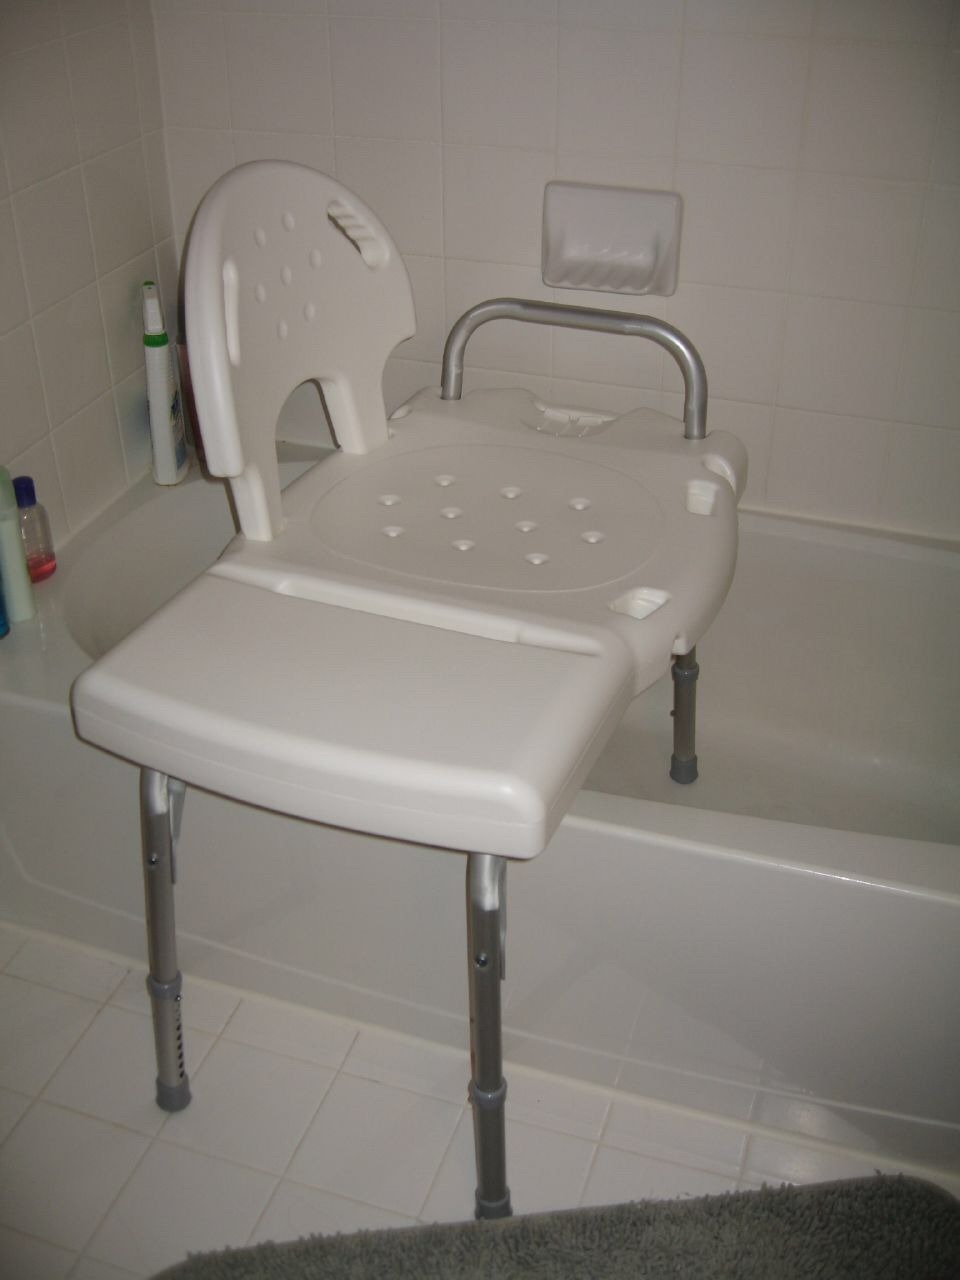 Handicap Bath Chairs Allsteel Relate Side Chair Guide To Handicapped Bathroom Accessories Learn How Choose What You Really Need Make Your Disabled Safe Practical And Enjoyable